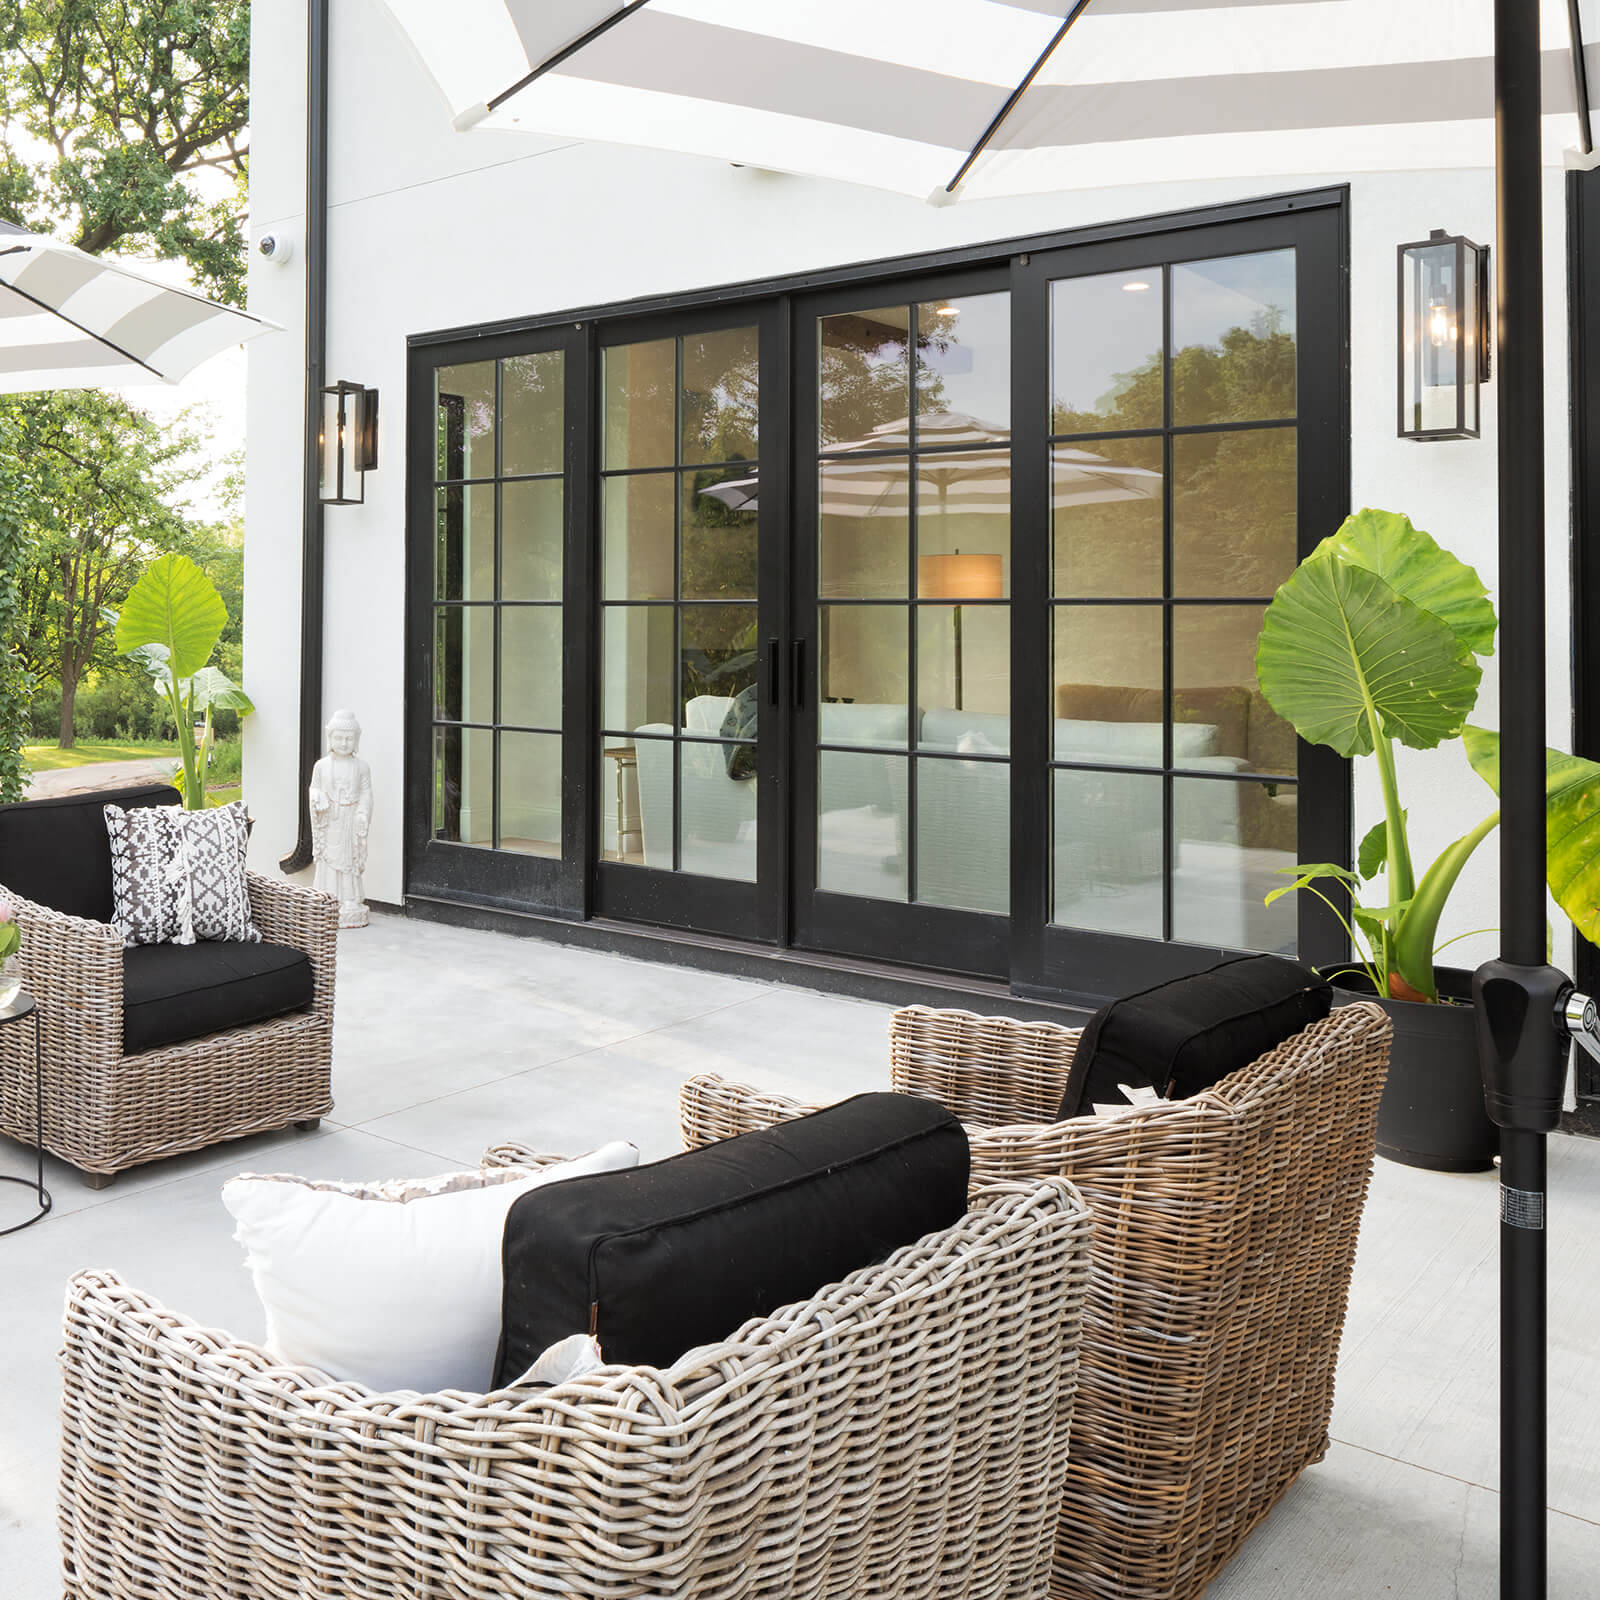 Patio entertainment area with closed Marvin Signature Ultimate Sliding French Door